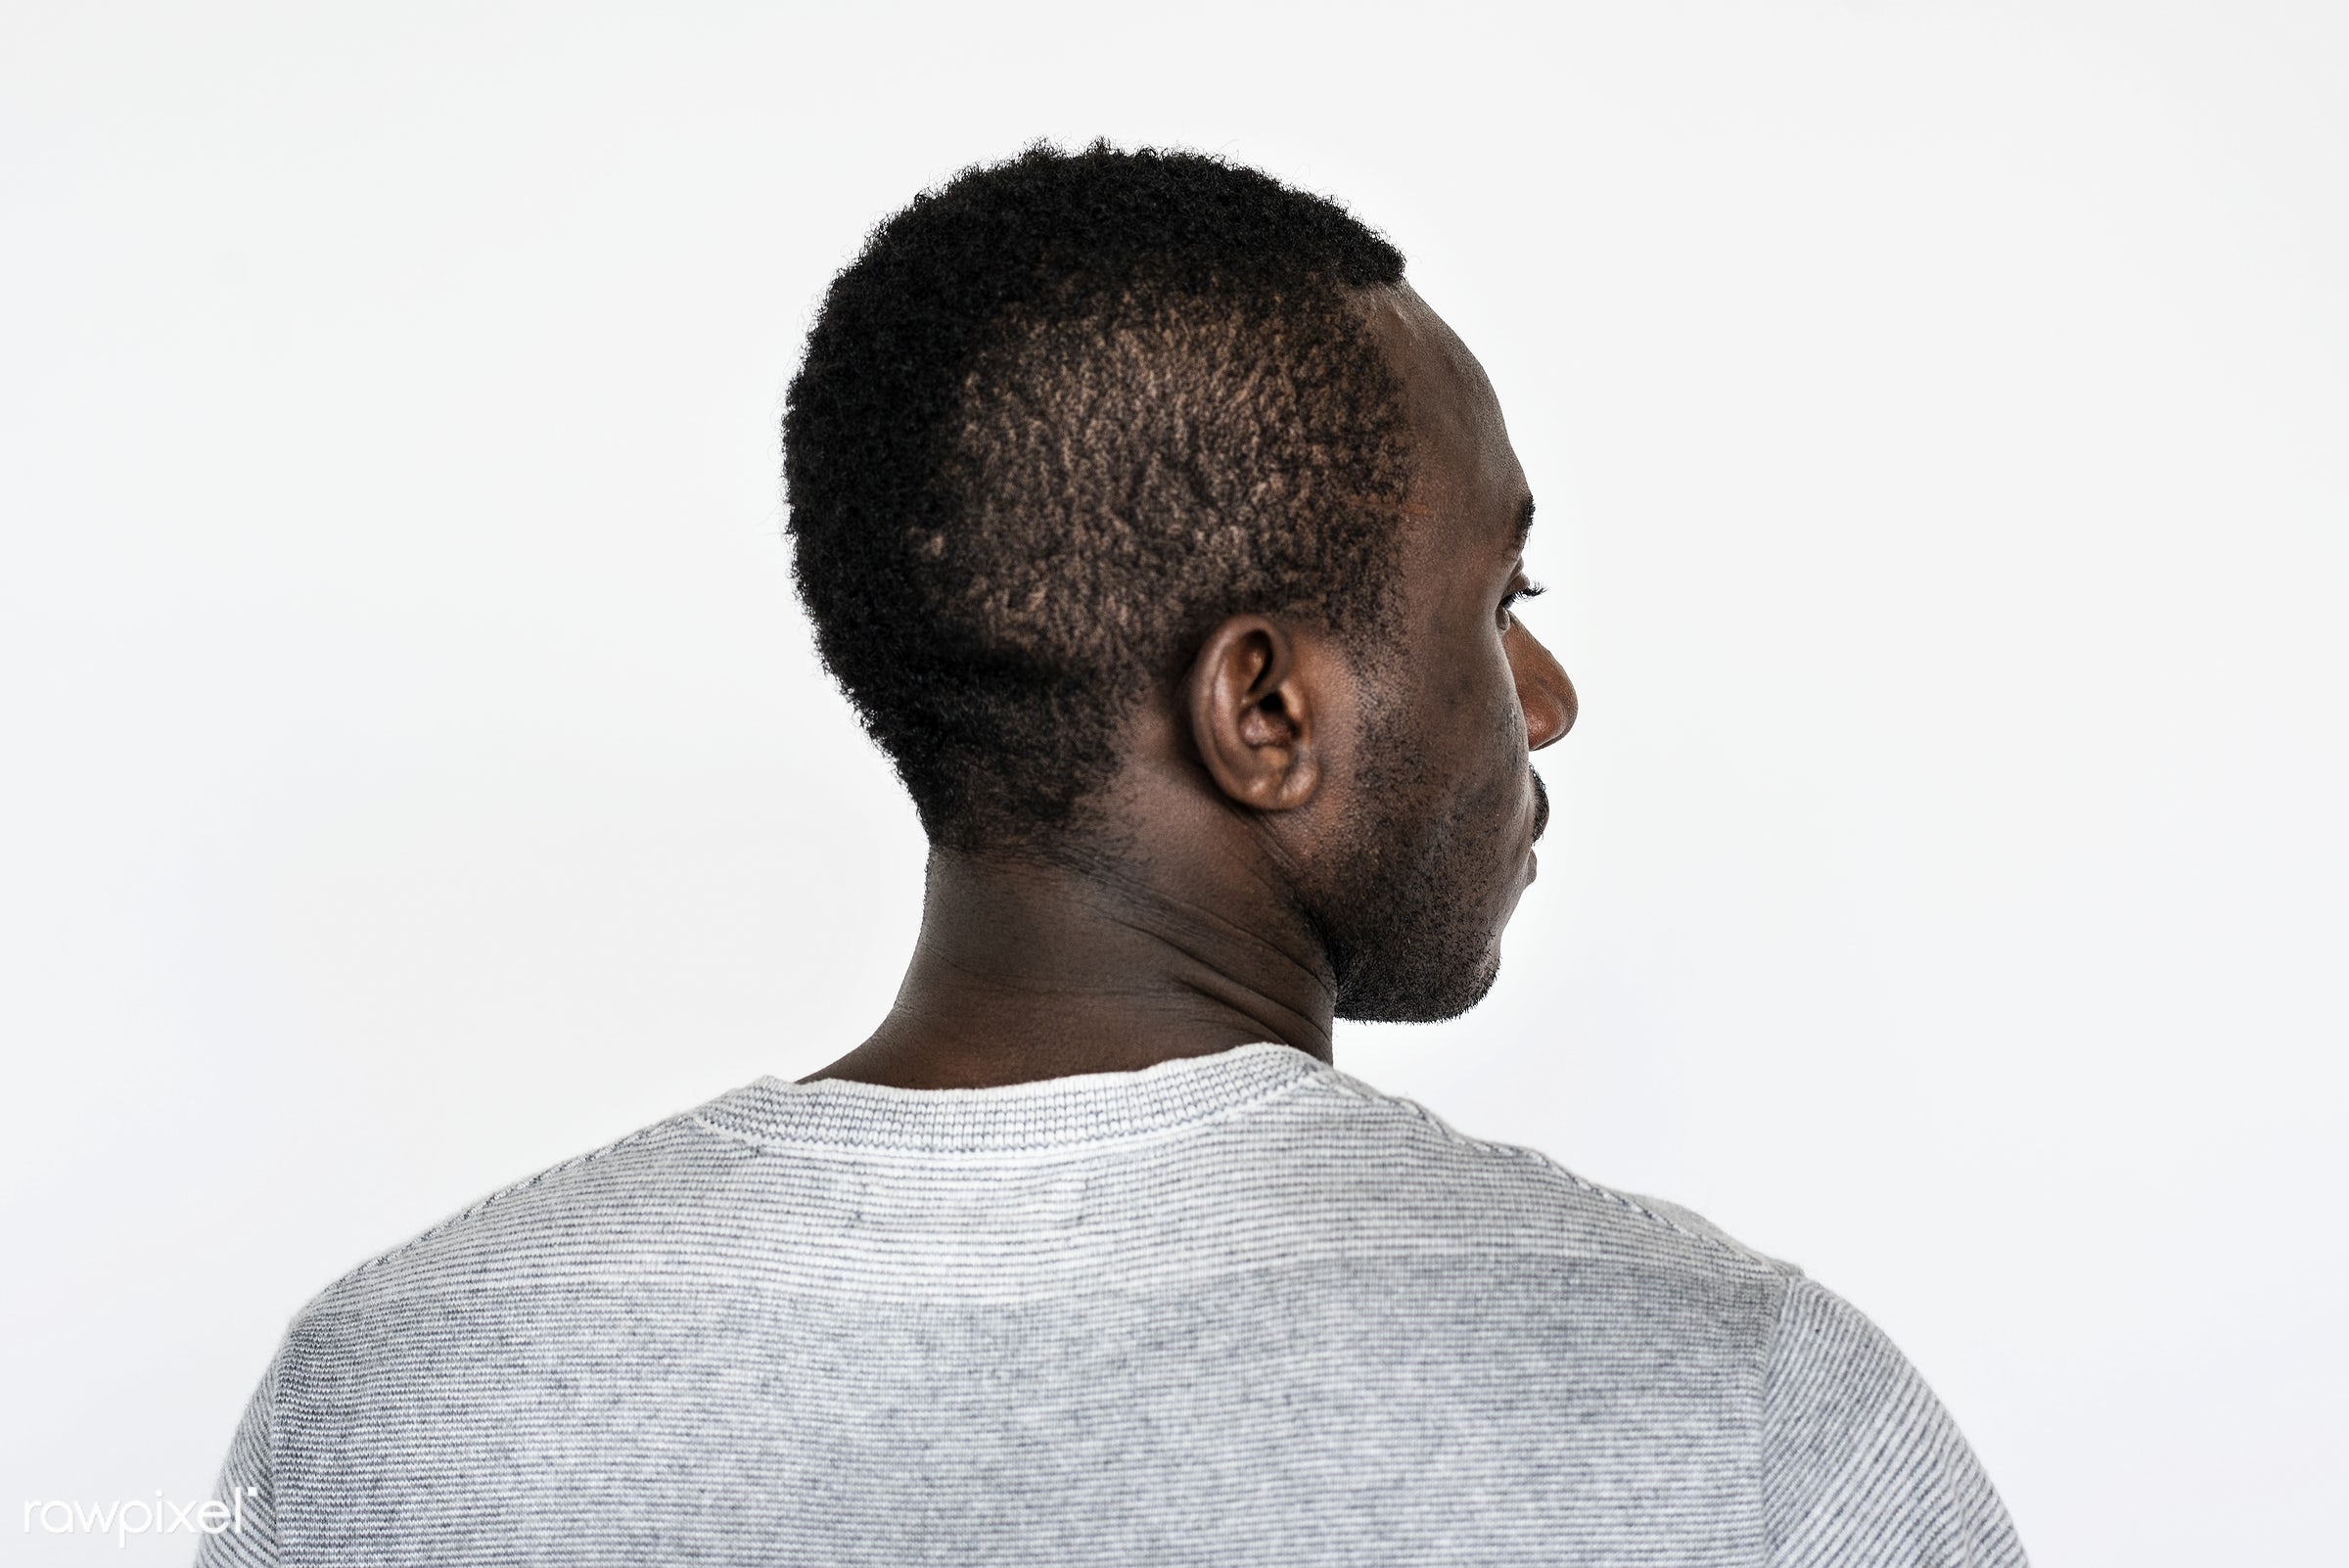 Portrait of a Ghanaian man - adult, africa, african, african descent, alone, back, black, casual, closeup, expression, face...